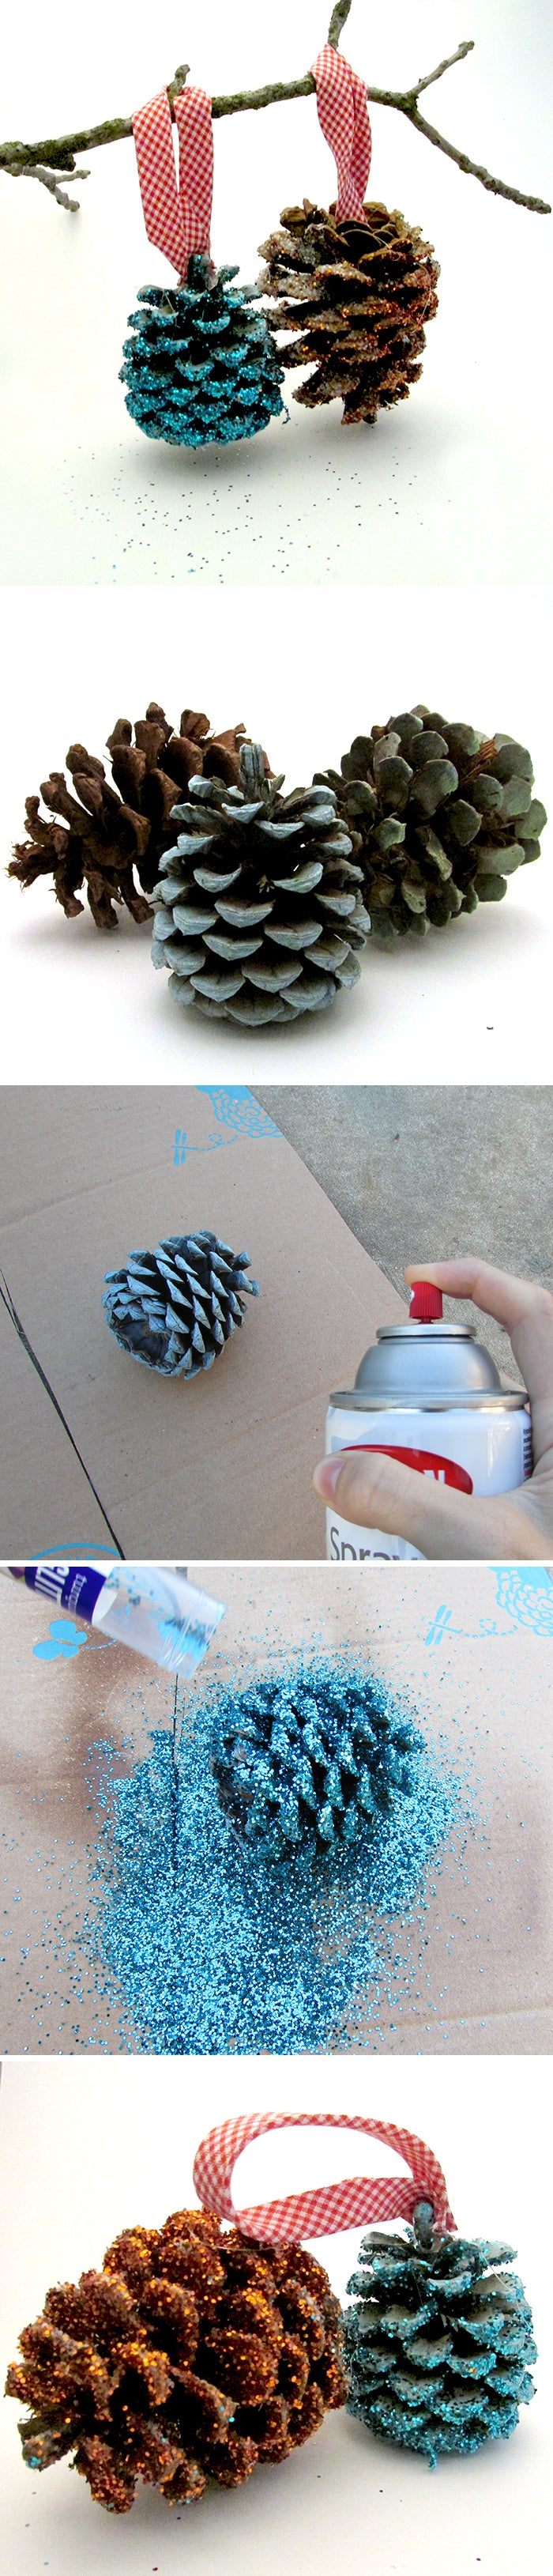 diy fabric mason jar